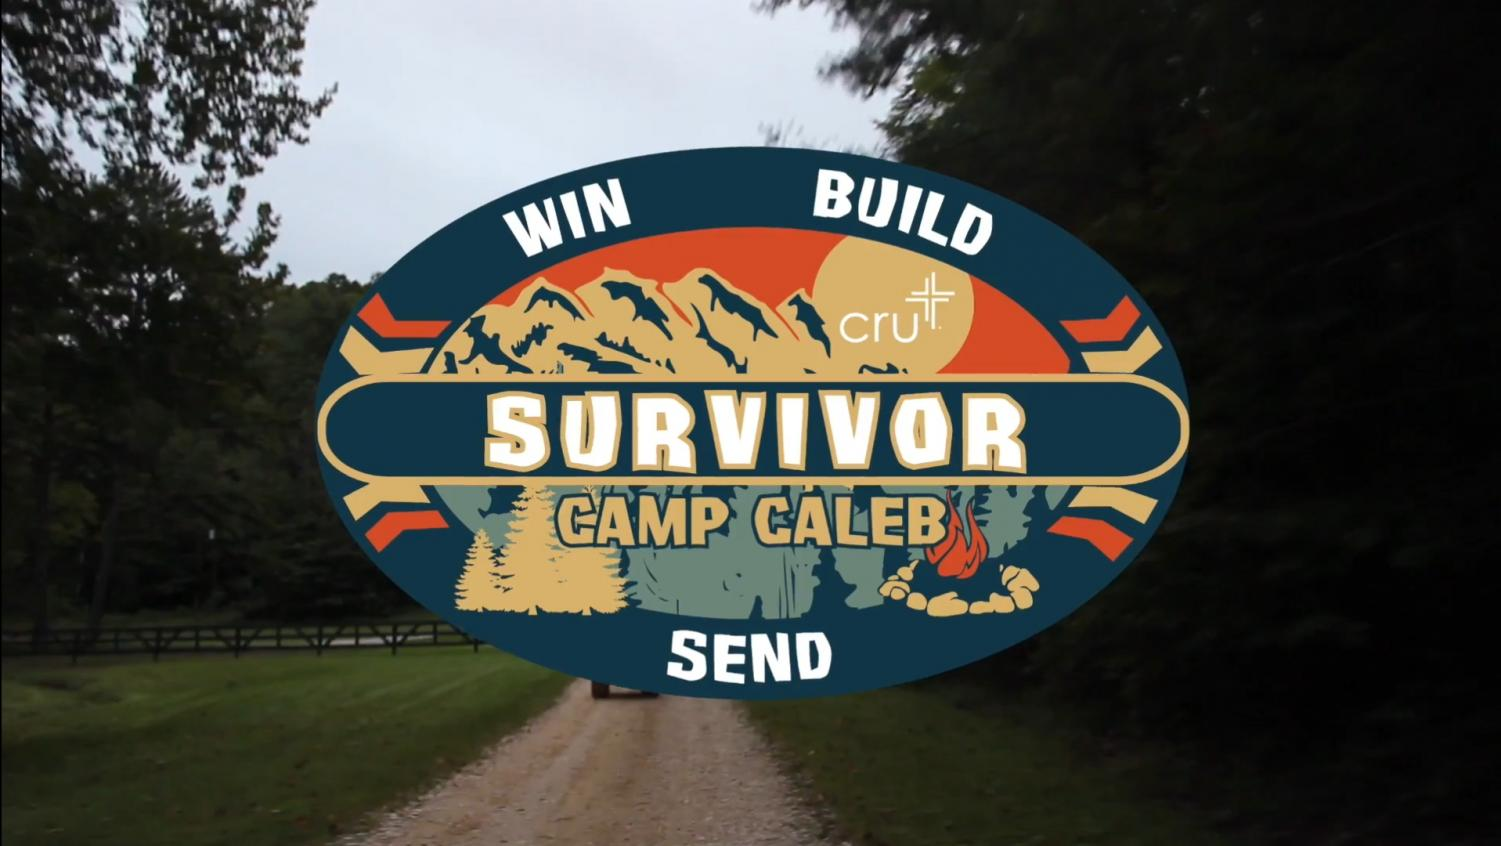 Cru is offering a fall retreat for Marshall University students at Camp Caleb in Flatgap, Kentucky, Sept. 28-30.